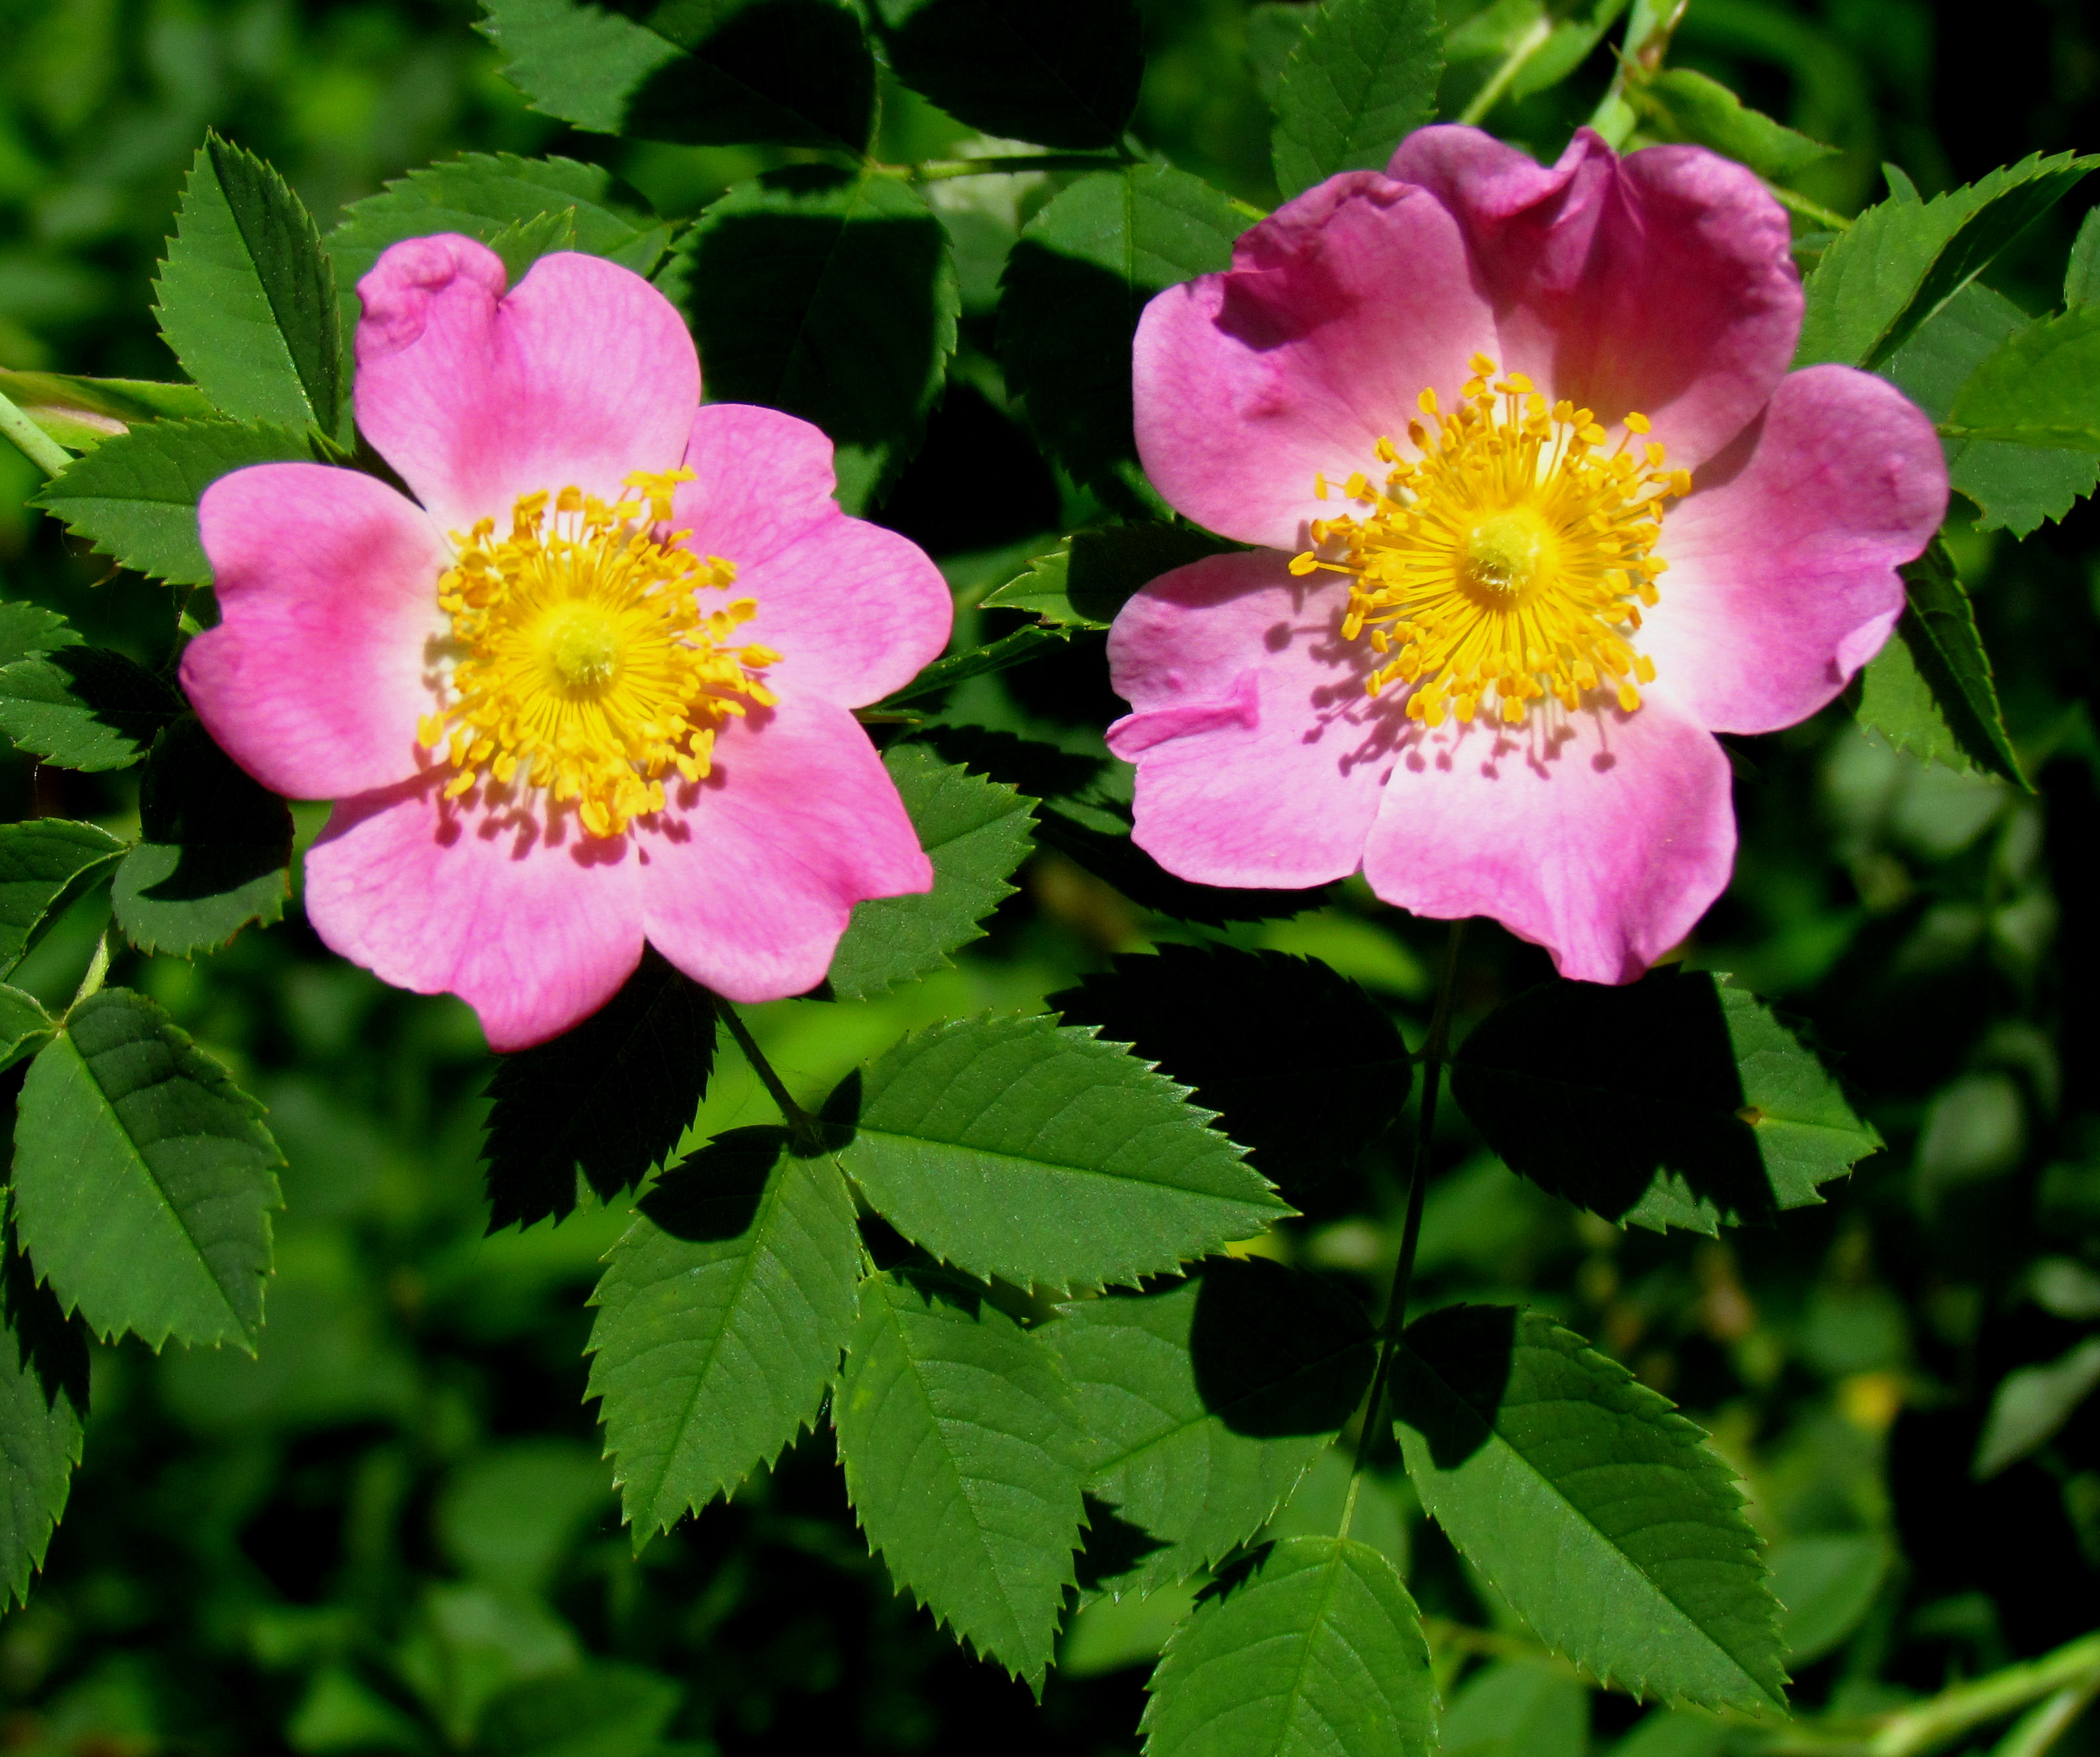 File:Pasture Rose, flowers and leaves.jpg - Wikimedia Commons